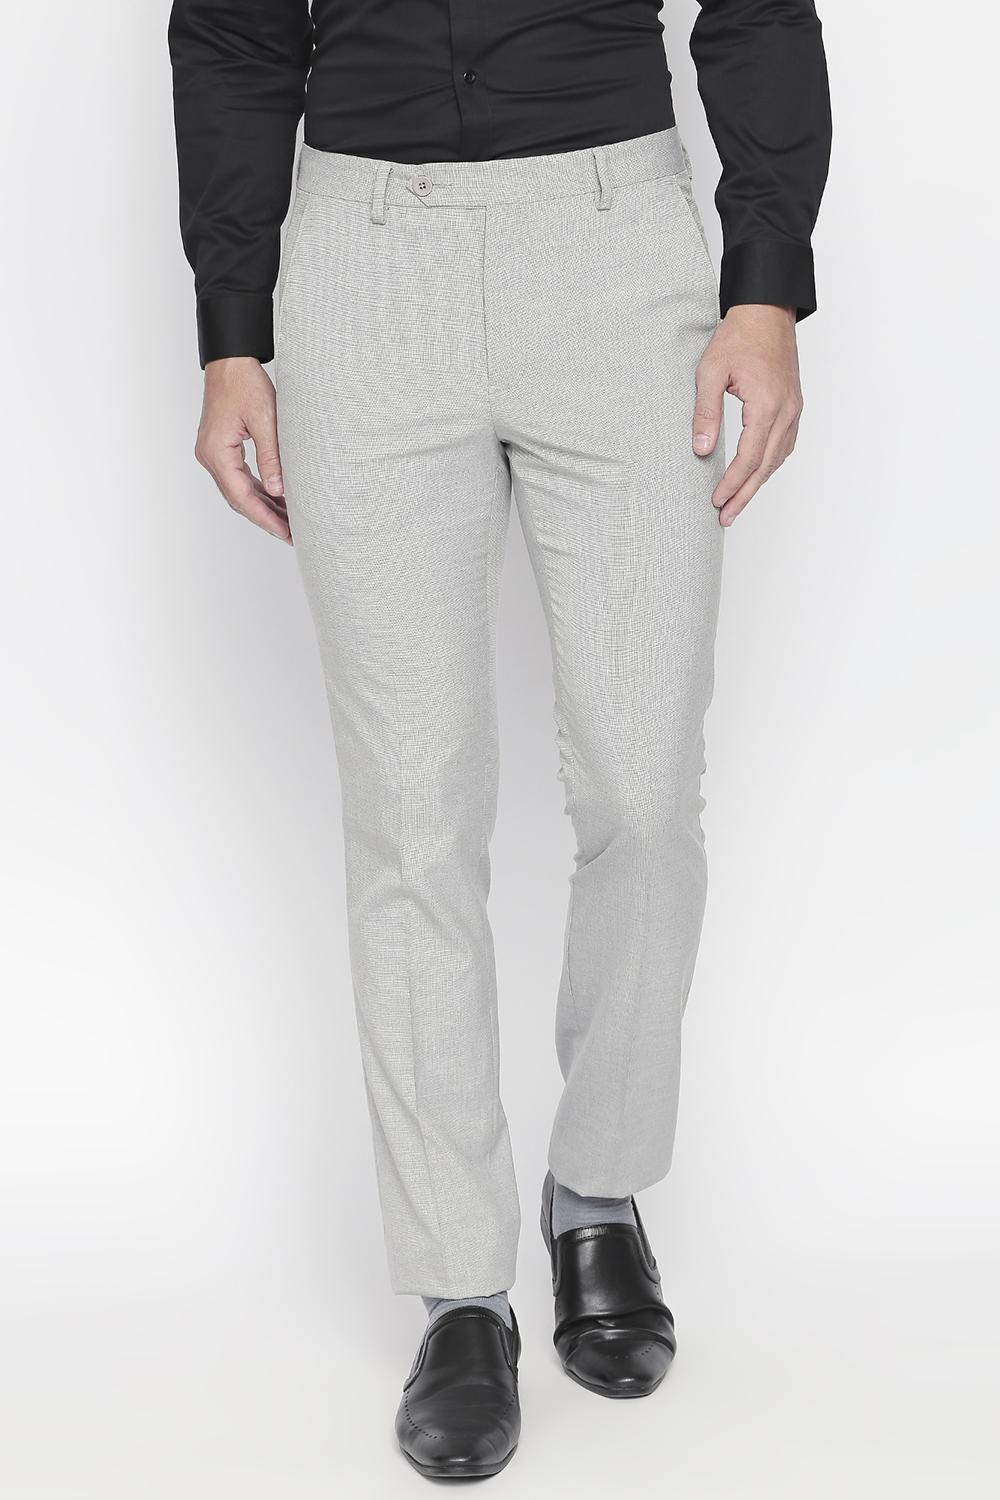 1ba3db2366 Buy Mens Trousers and Chinos Online in India | Pantaloons